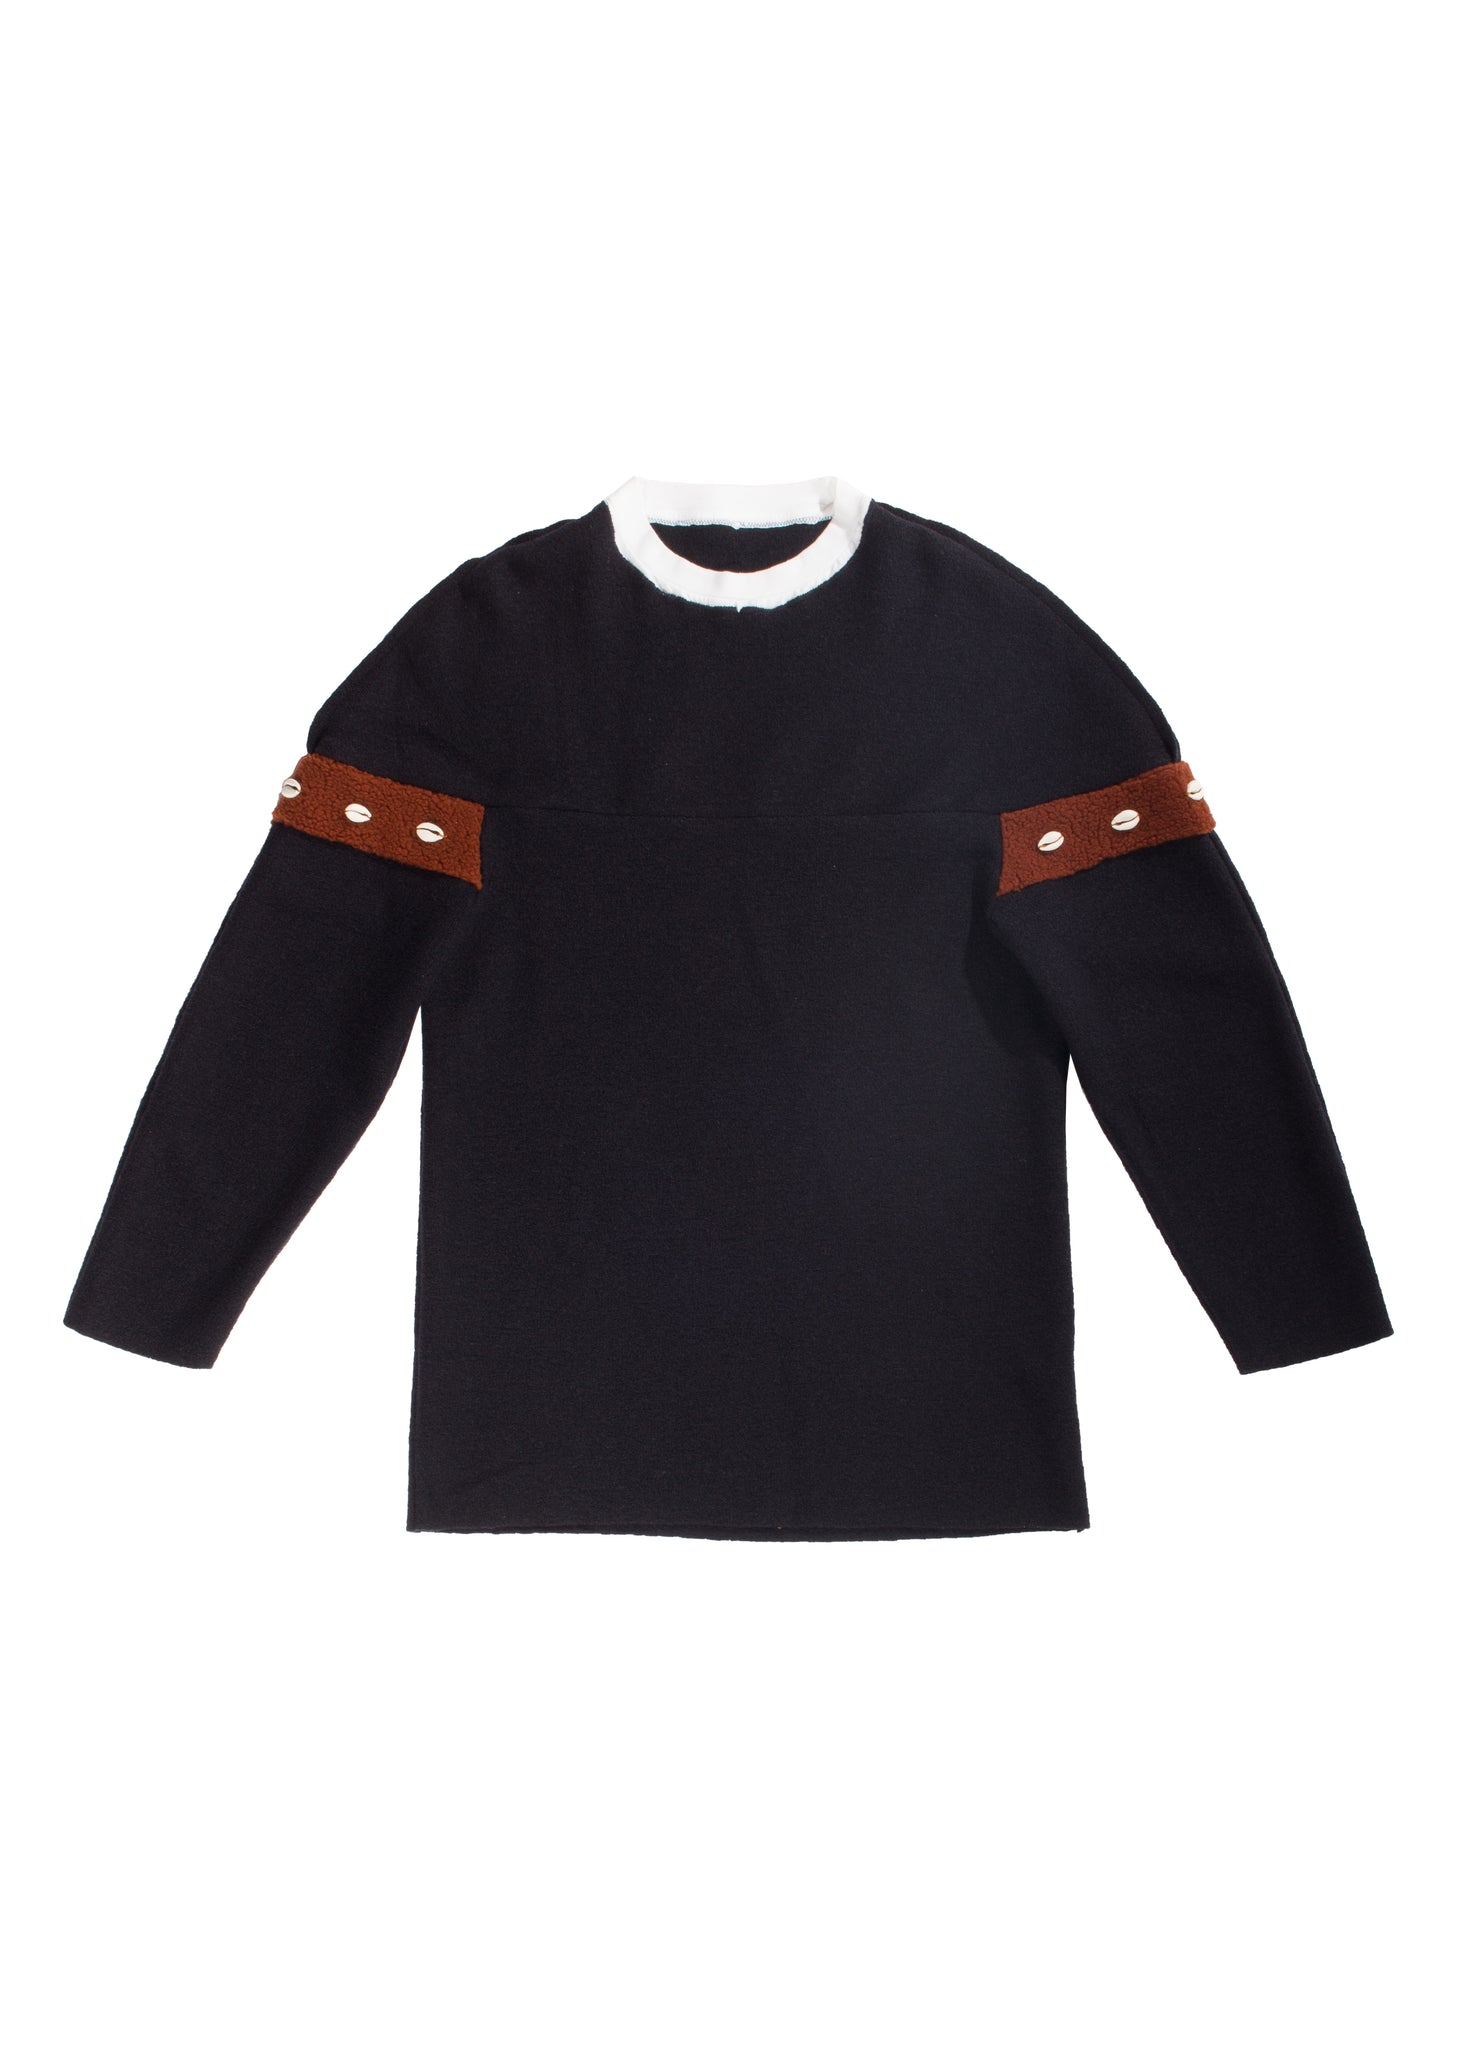 Xhosa - Navy boiled wool crewneck sweater with cowry shells